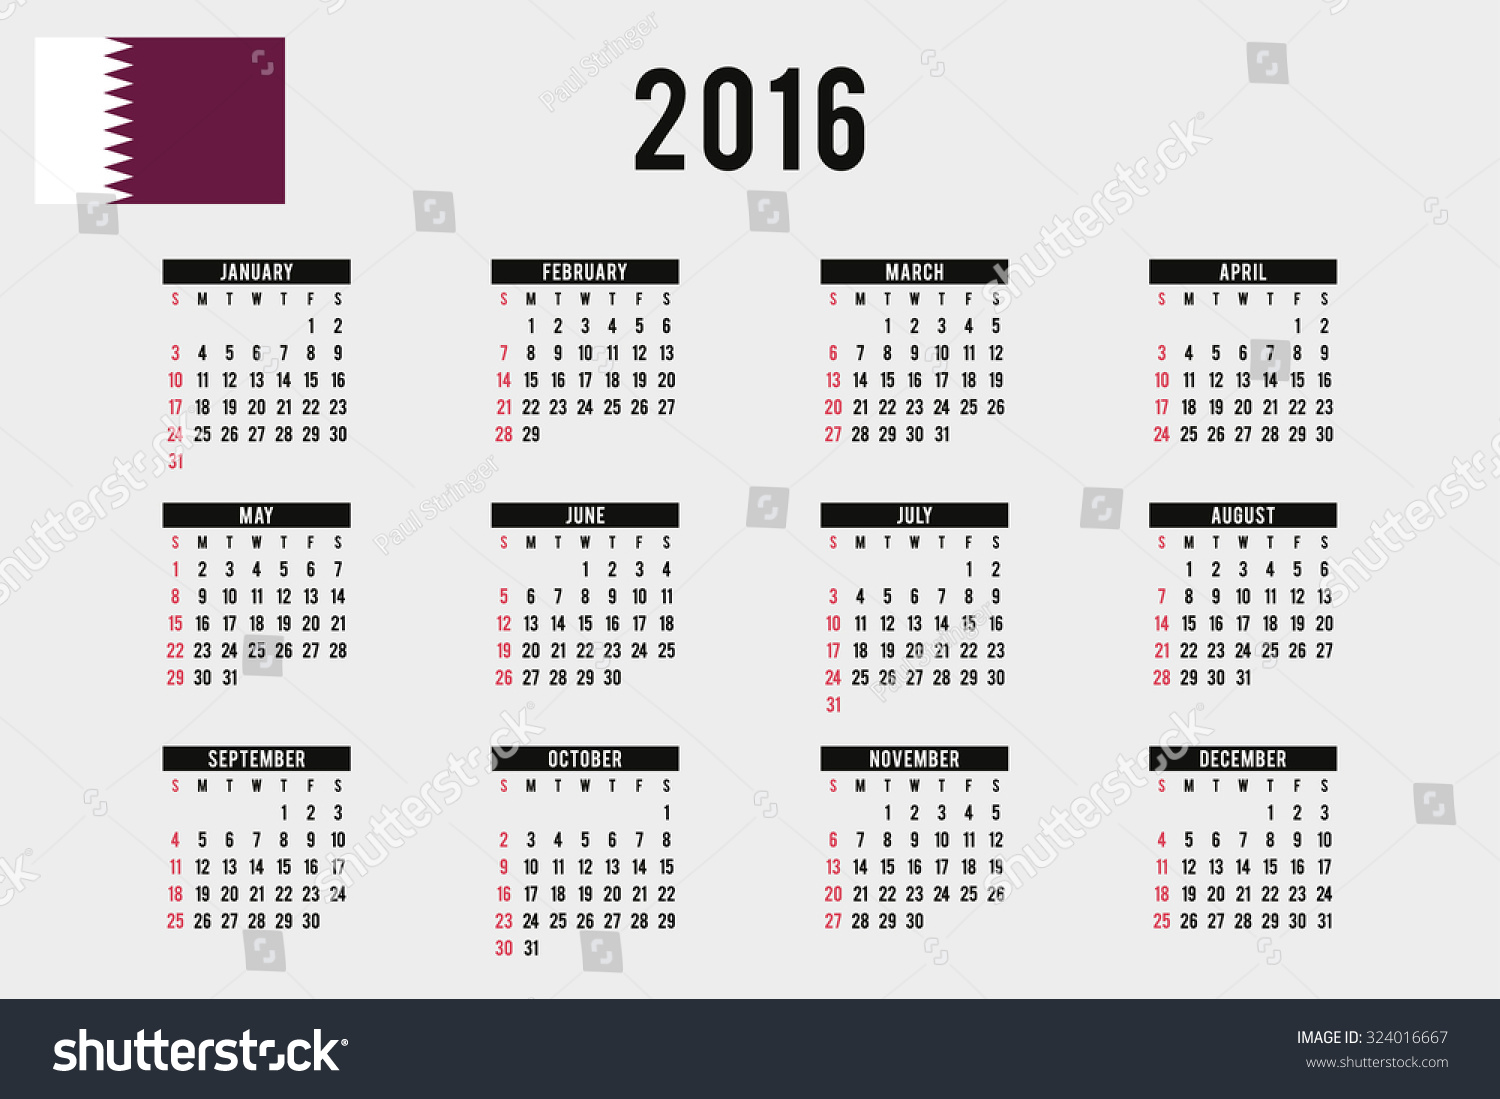 Calendar Qatar : School calendar arab international academy